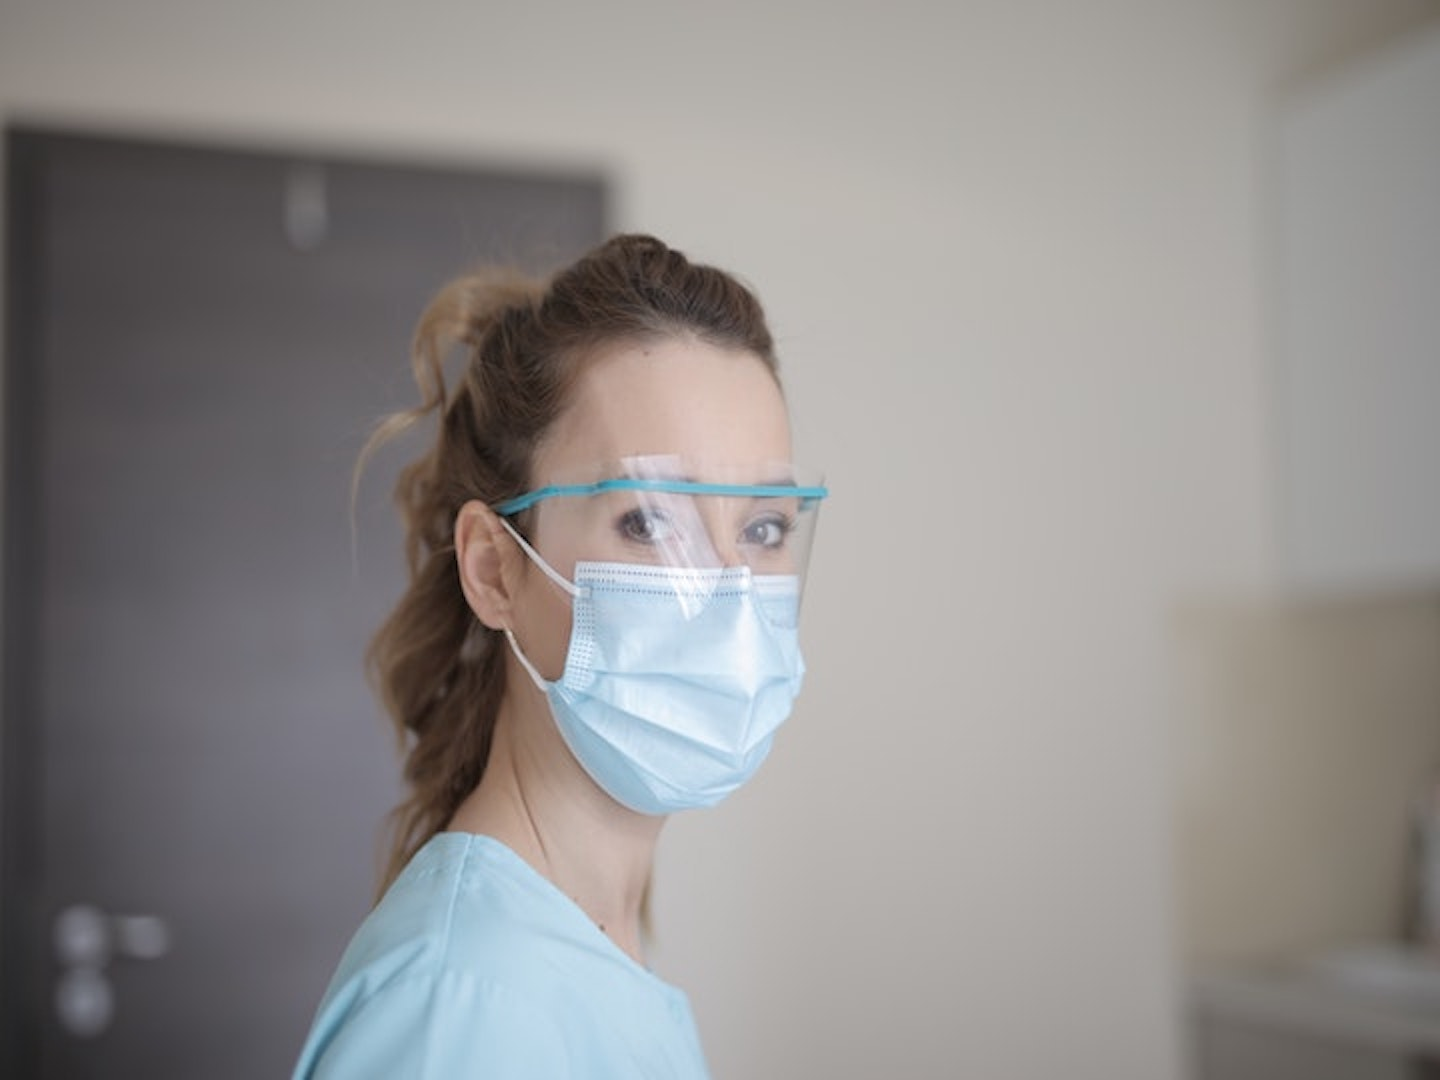 This is a woman wearing in blue shirt, face mask and a pair of protective glasses.